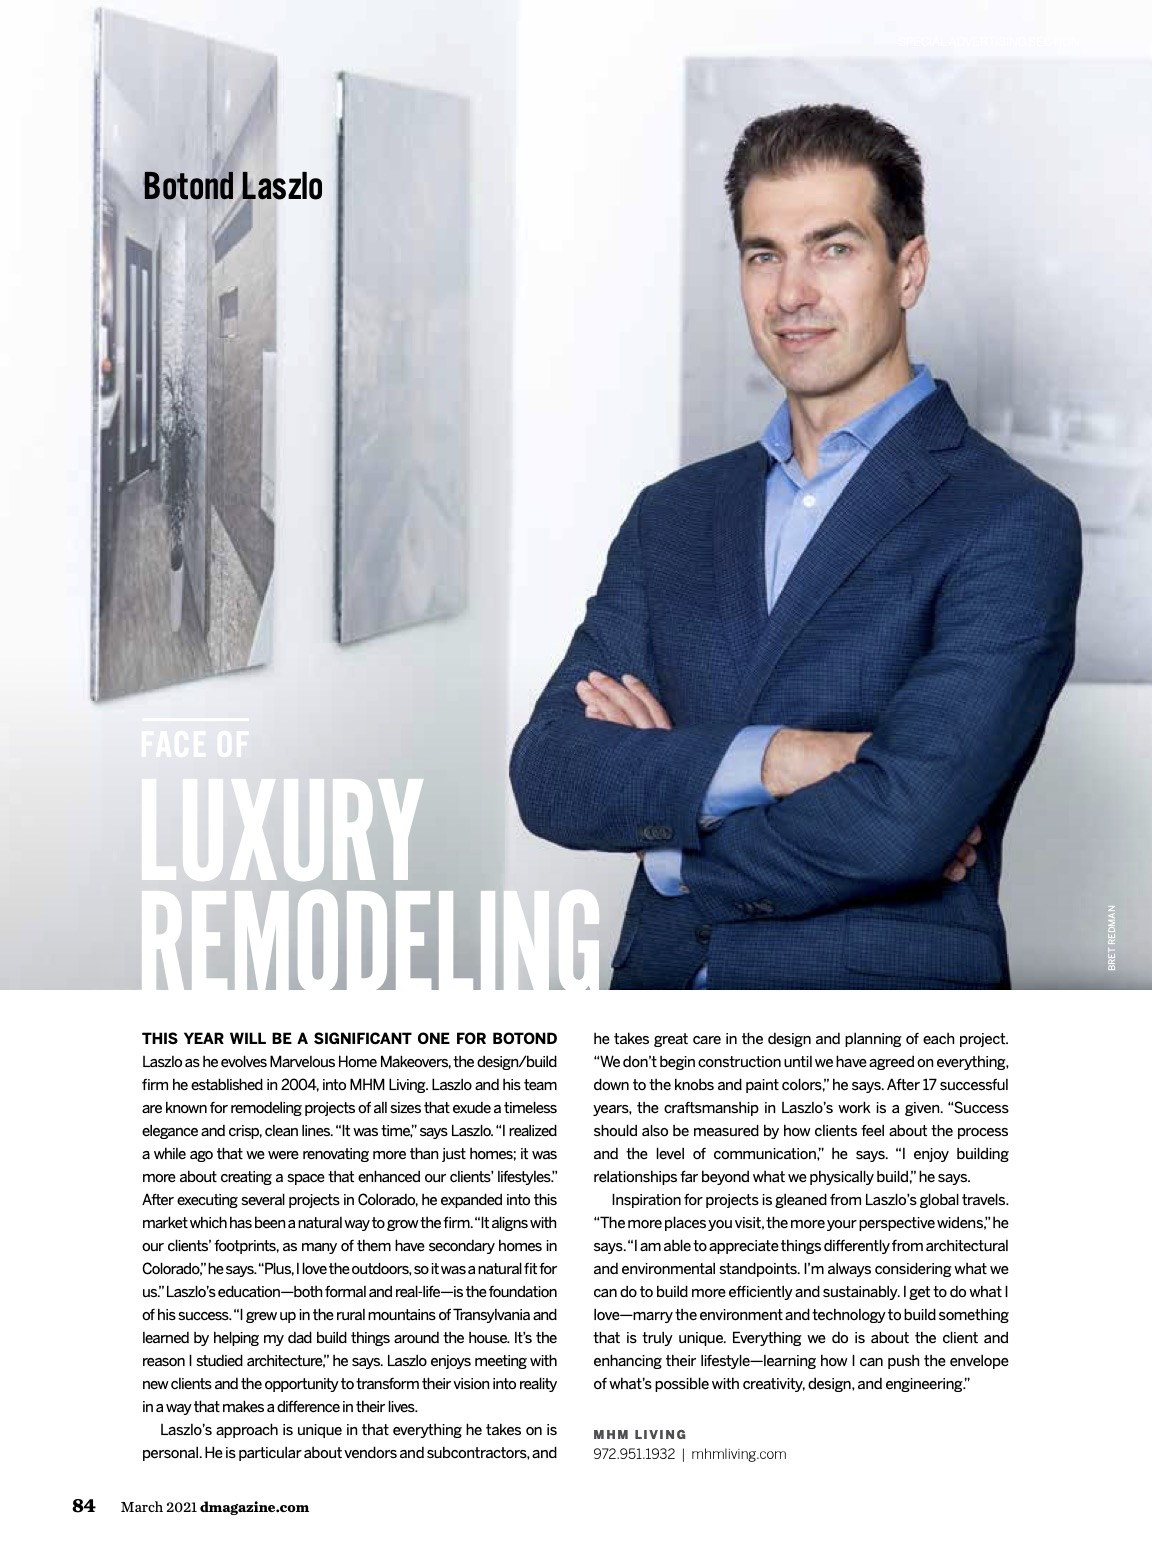 d magazine march 2021 featuring mhm living